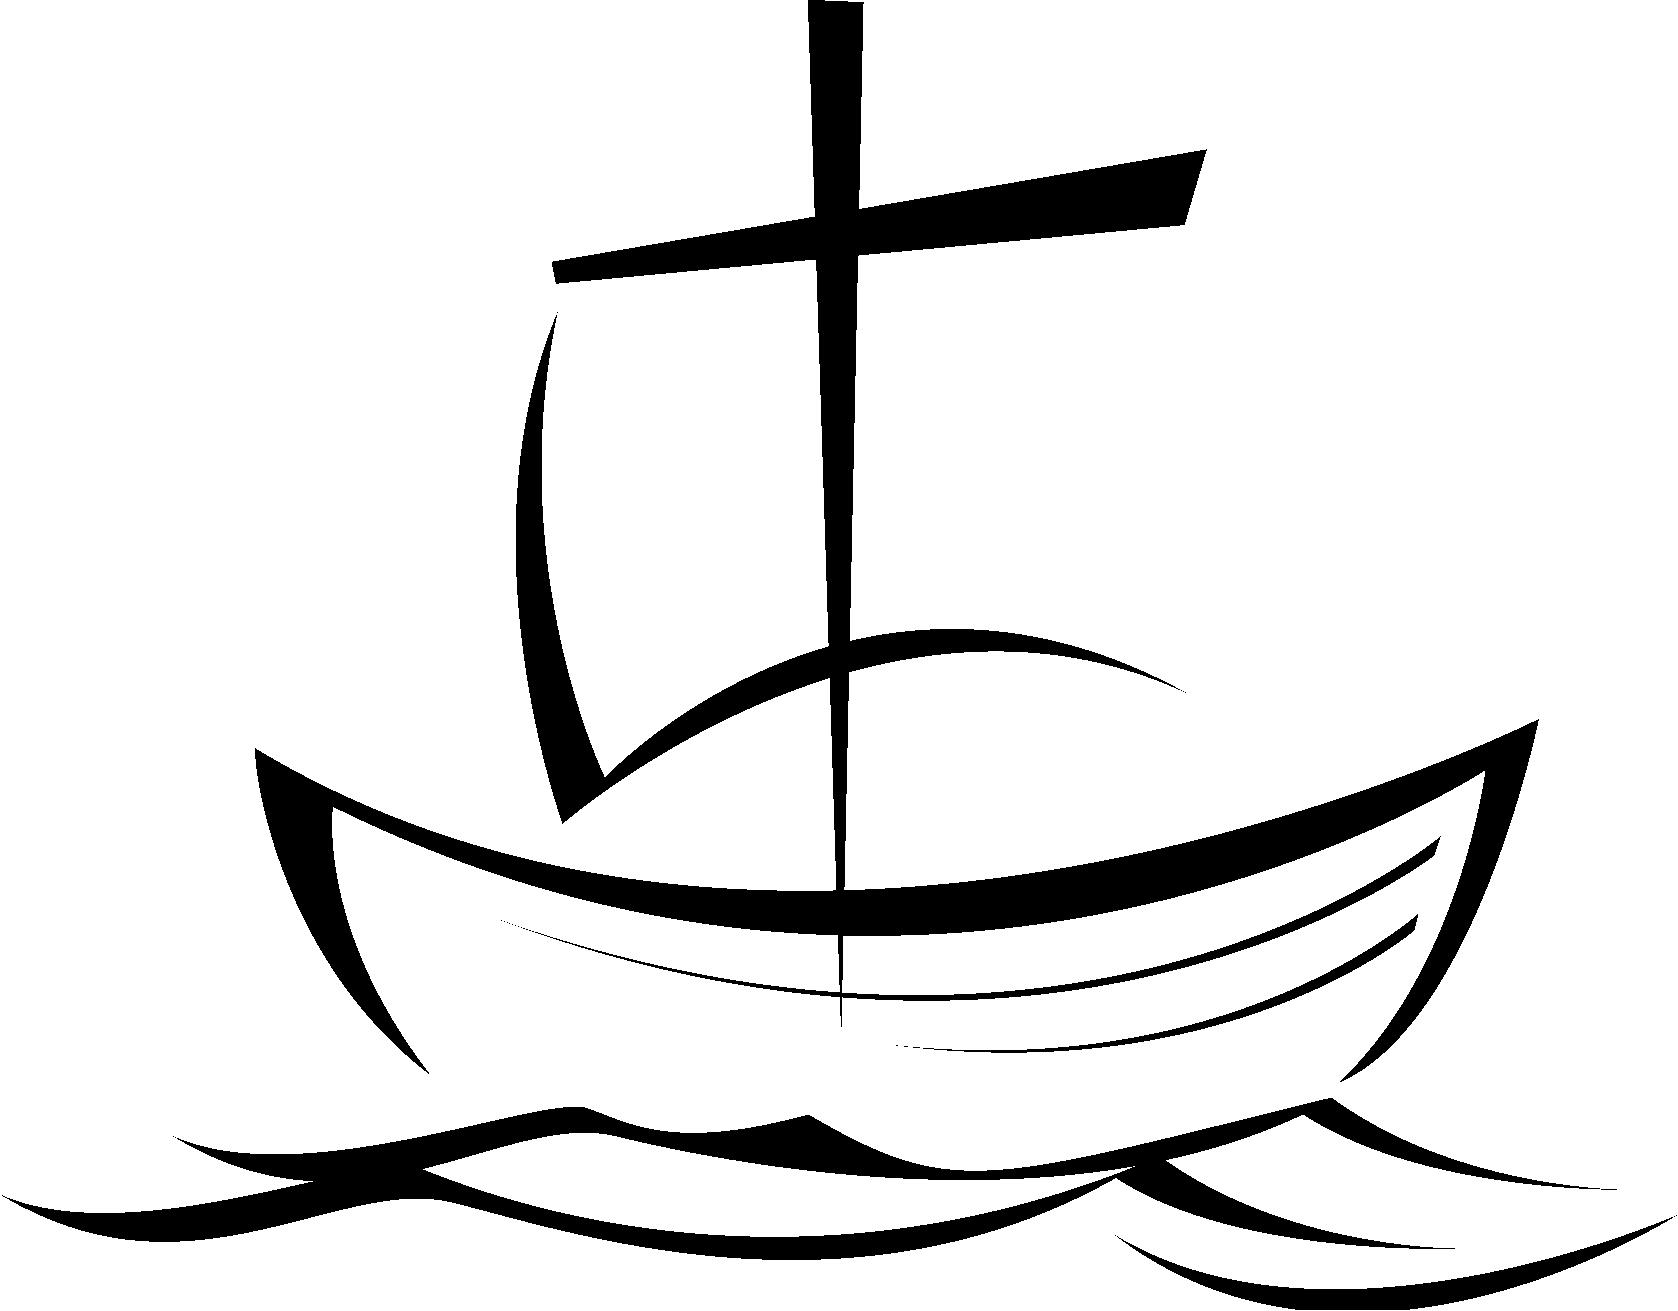 891 moreover Boat Outline together with Atlanta Falcons Nfl Laptop Car Truck Vinyl Decal Window Sticker Pv620 besides Valentines Day Drawing Holidays moreover Islamic Borders Cliparts. on simple fishing drawing